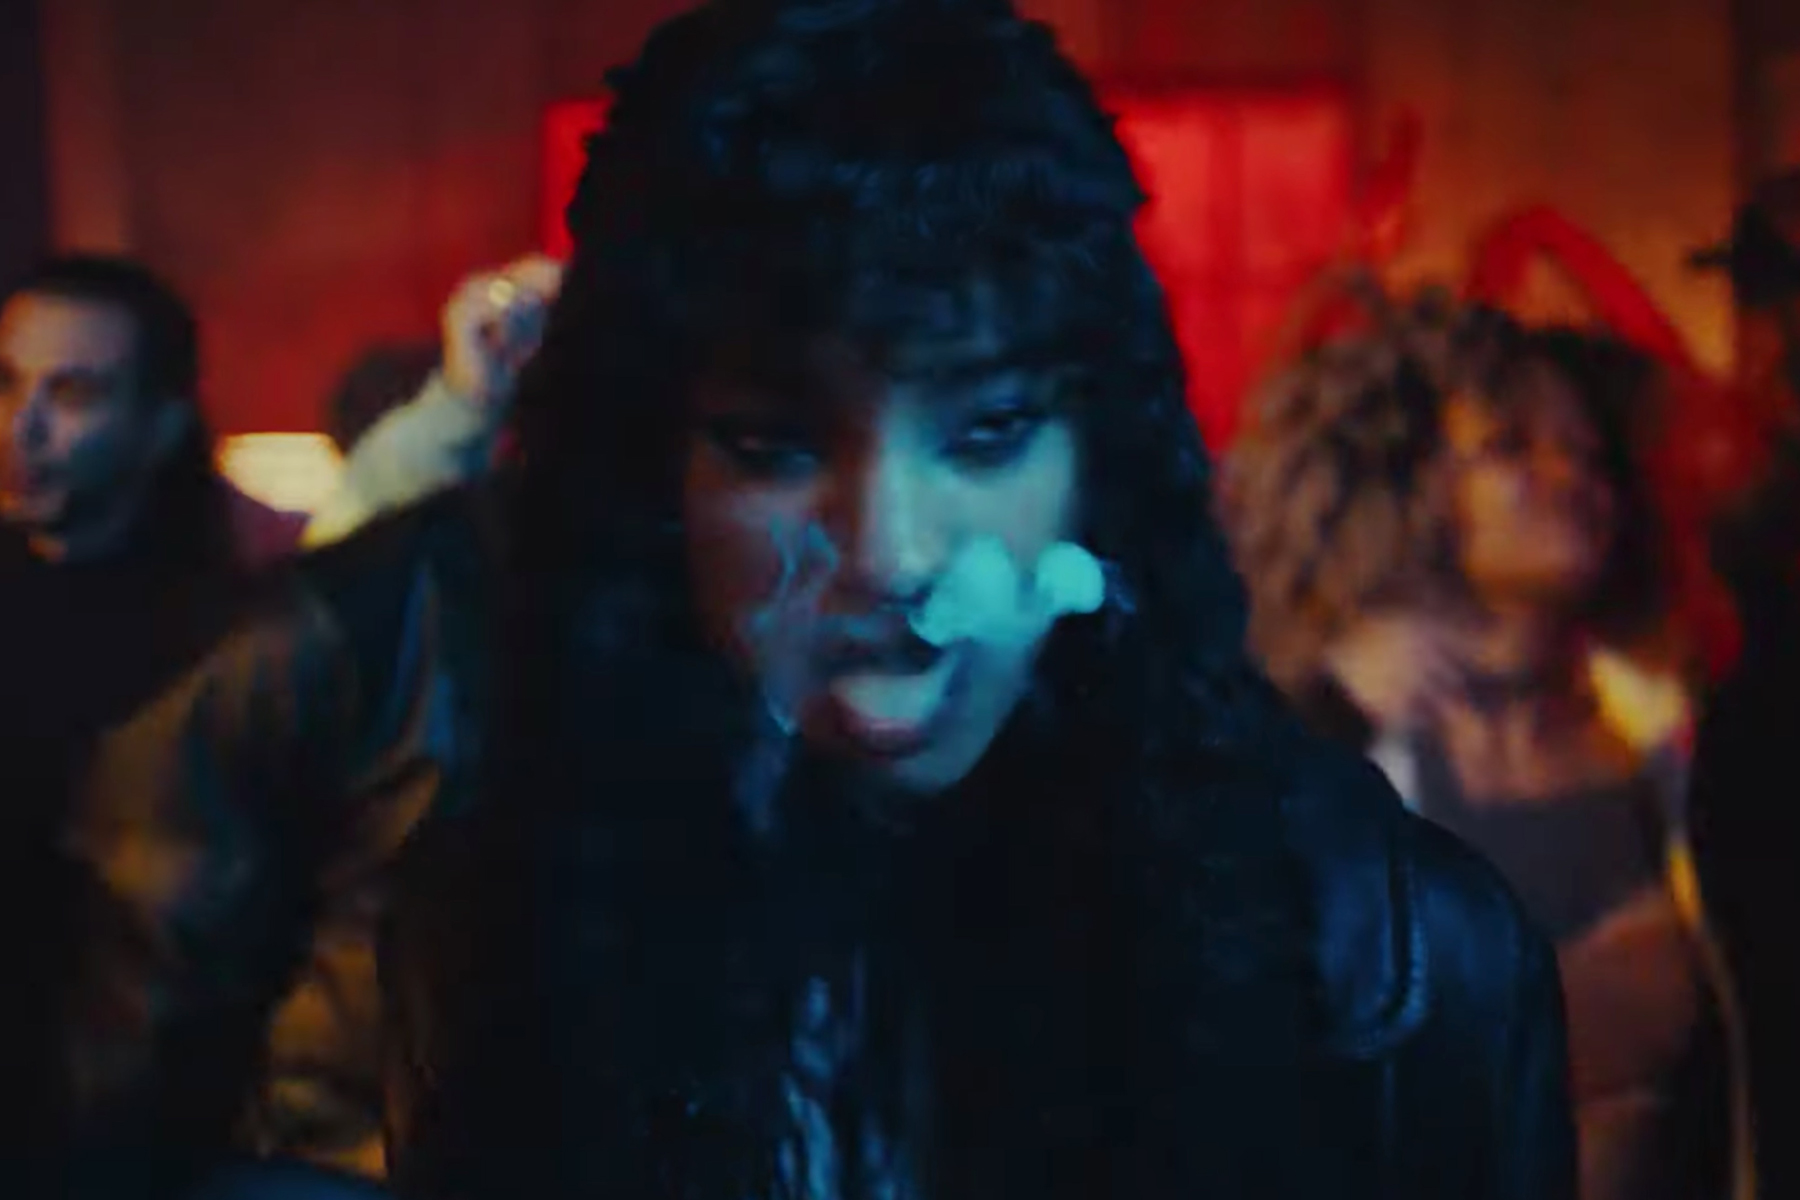 Willow Smith Confronts a Terrifying Figure in a Dingy Rock Club in 'Transparent Soul' Video